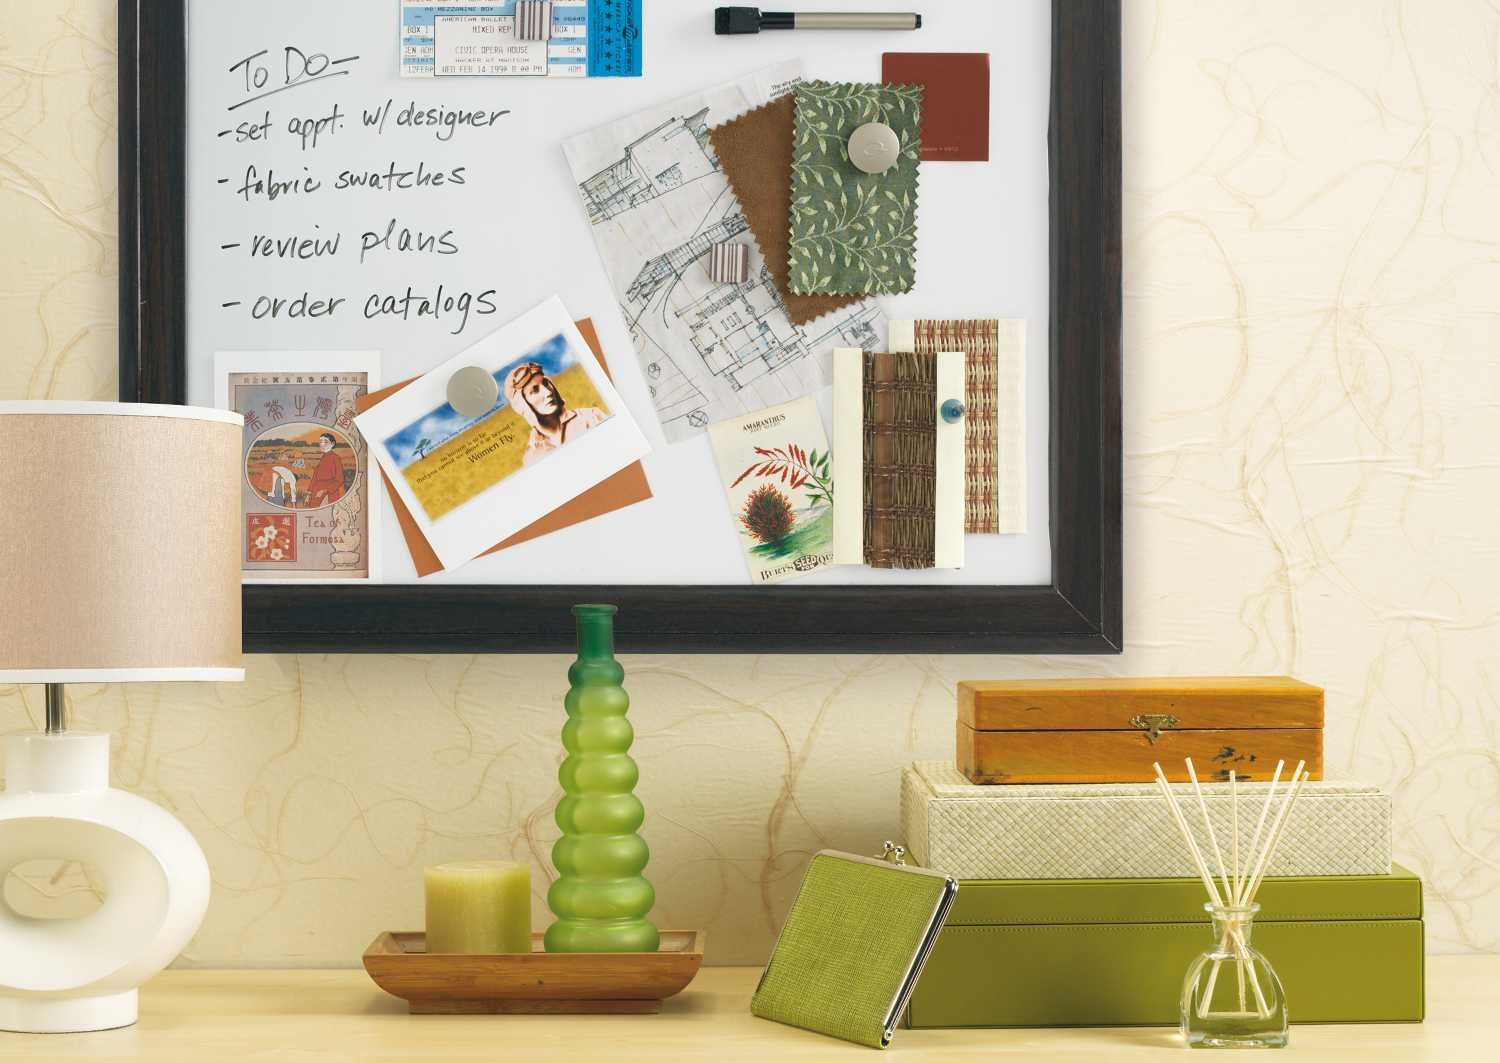 whiteboard for home office. Whiteboard For Home Office. Amazon.com : Quartet Two-tone Décor Magnetic Office